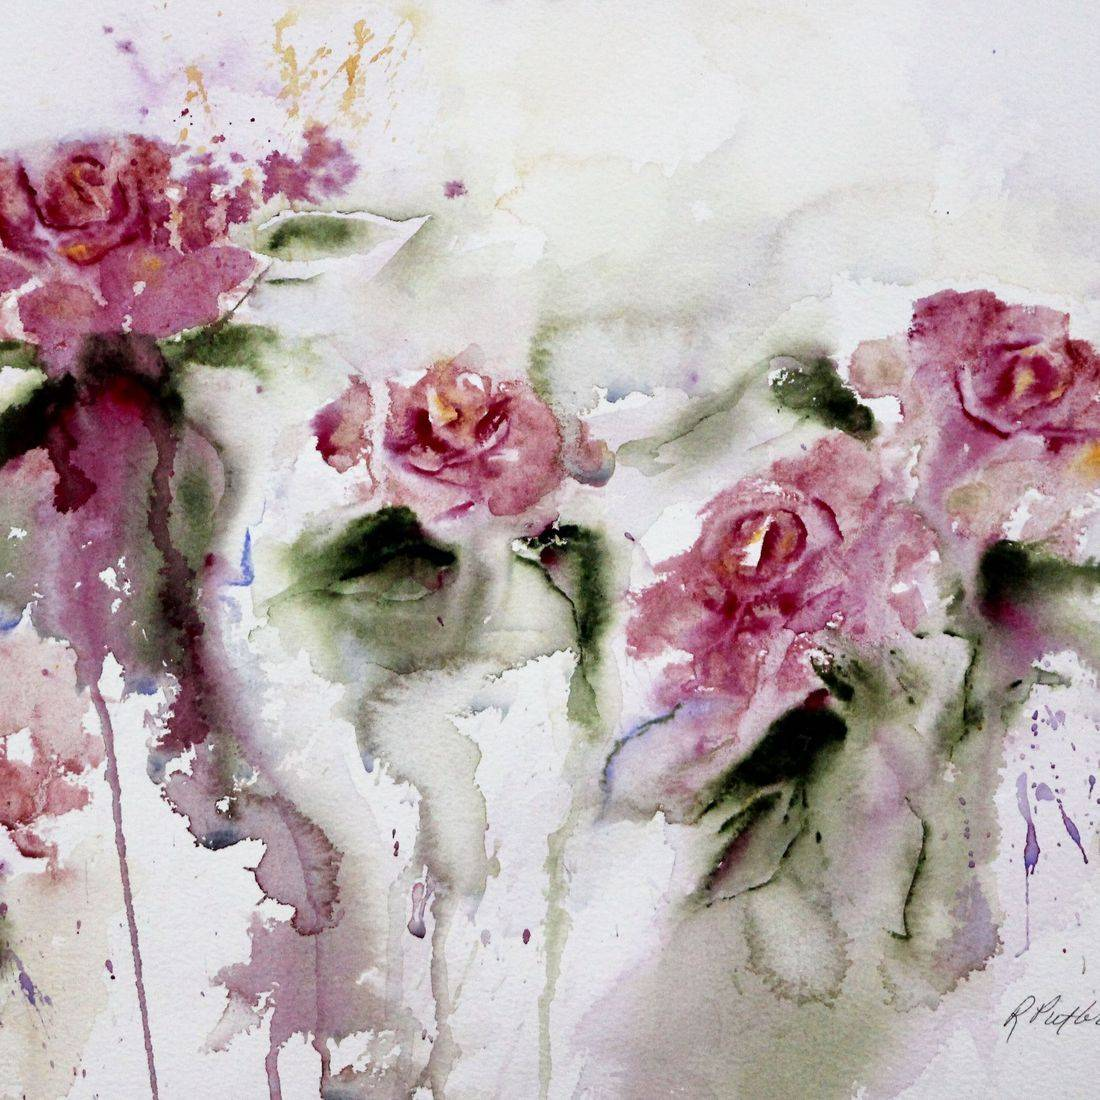 R Putbrese Watercolor, Rebecca Krutsinger watercolor painting of Floral roses